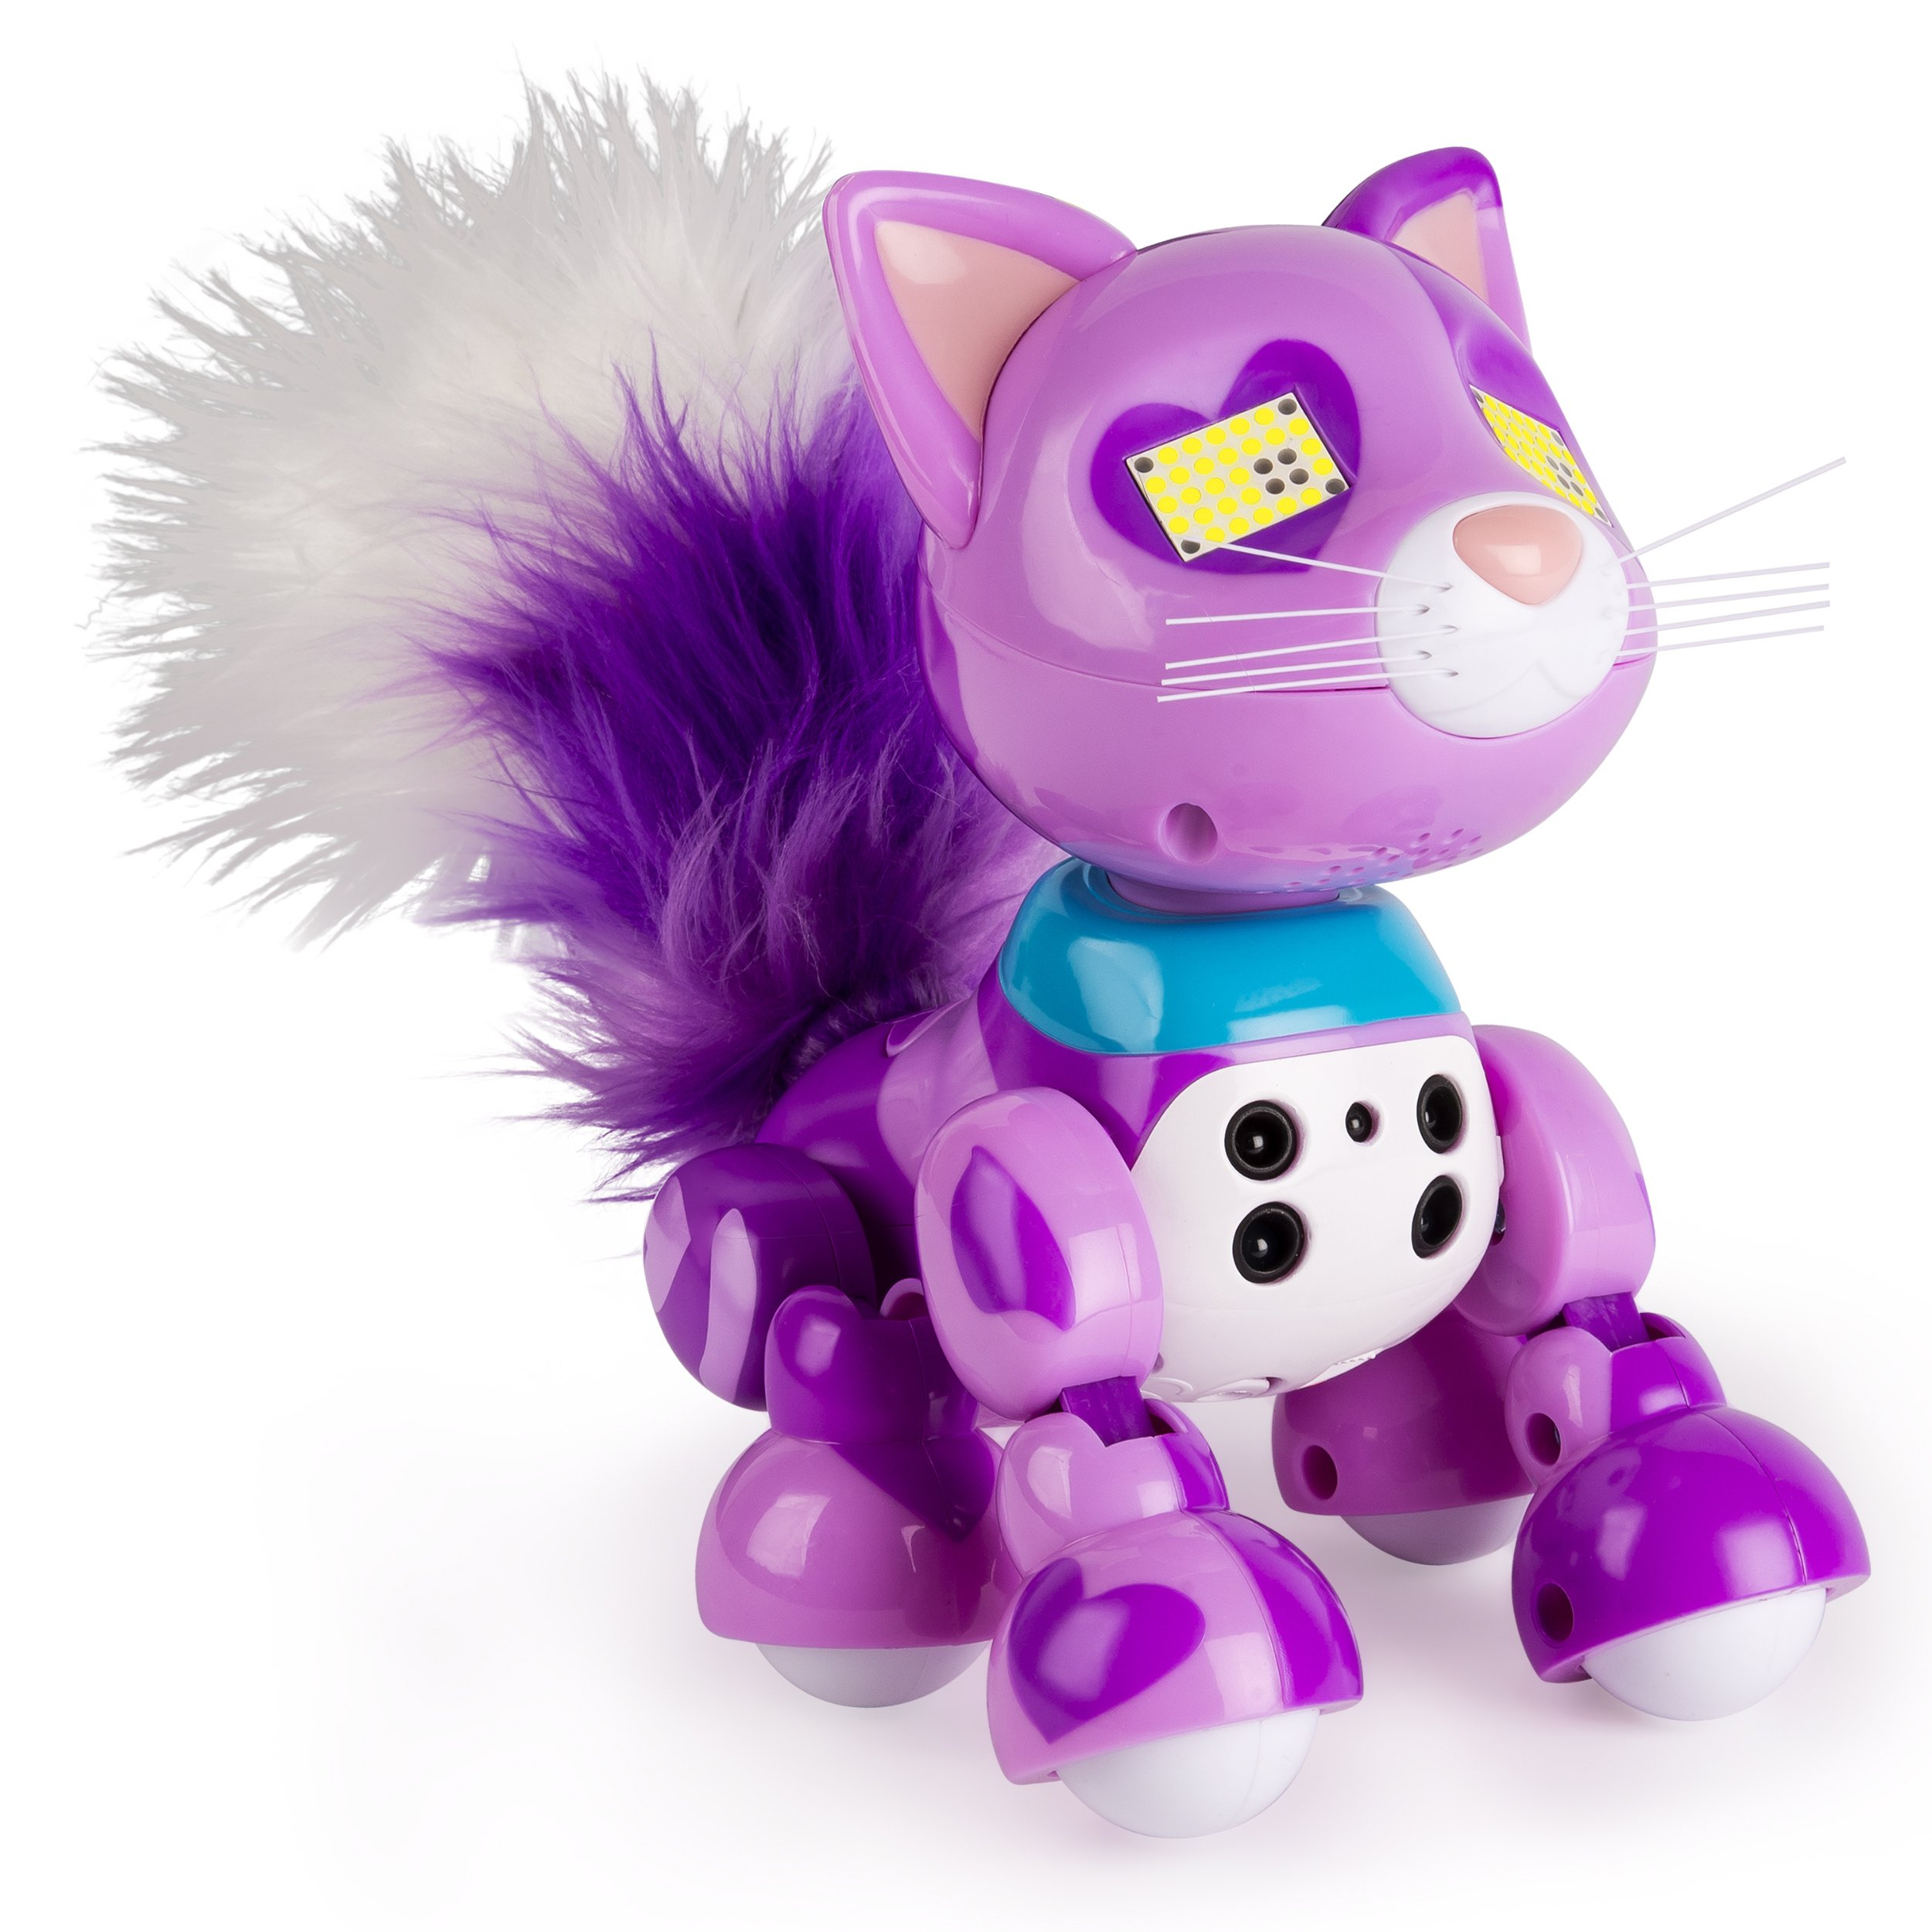 Zoomer Meowzies, Viola, Interactive Kitten with Lights, Sounds and Sensors, by Spin Master by Zoomer (Image #4)